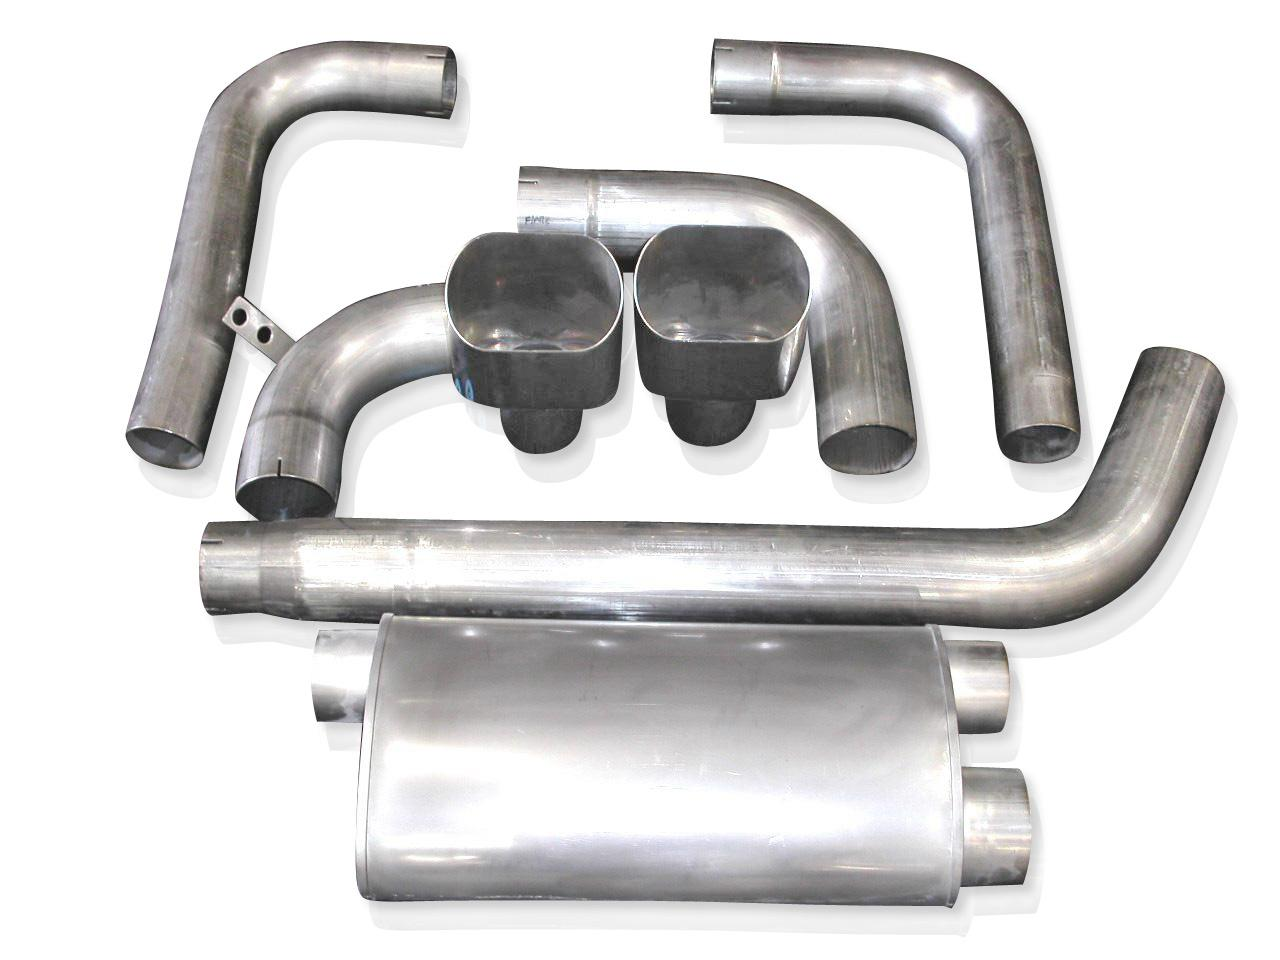 "93-02 Fbody Stainless Works 3.5"" Turbo Muffler Exhaust System w/Wide Oval Tips"